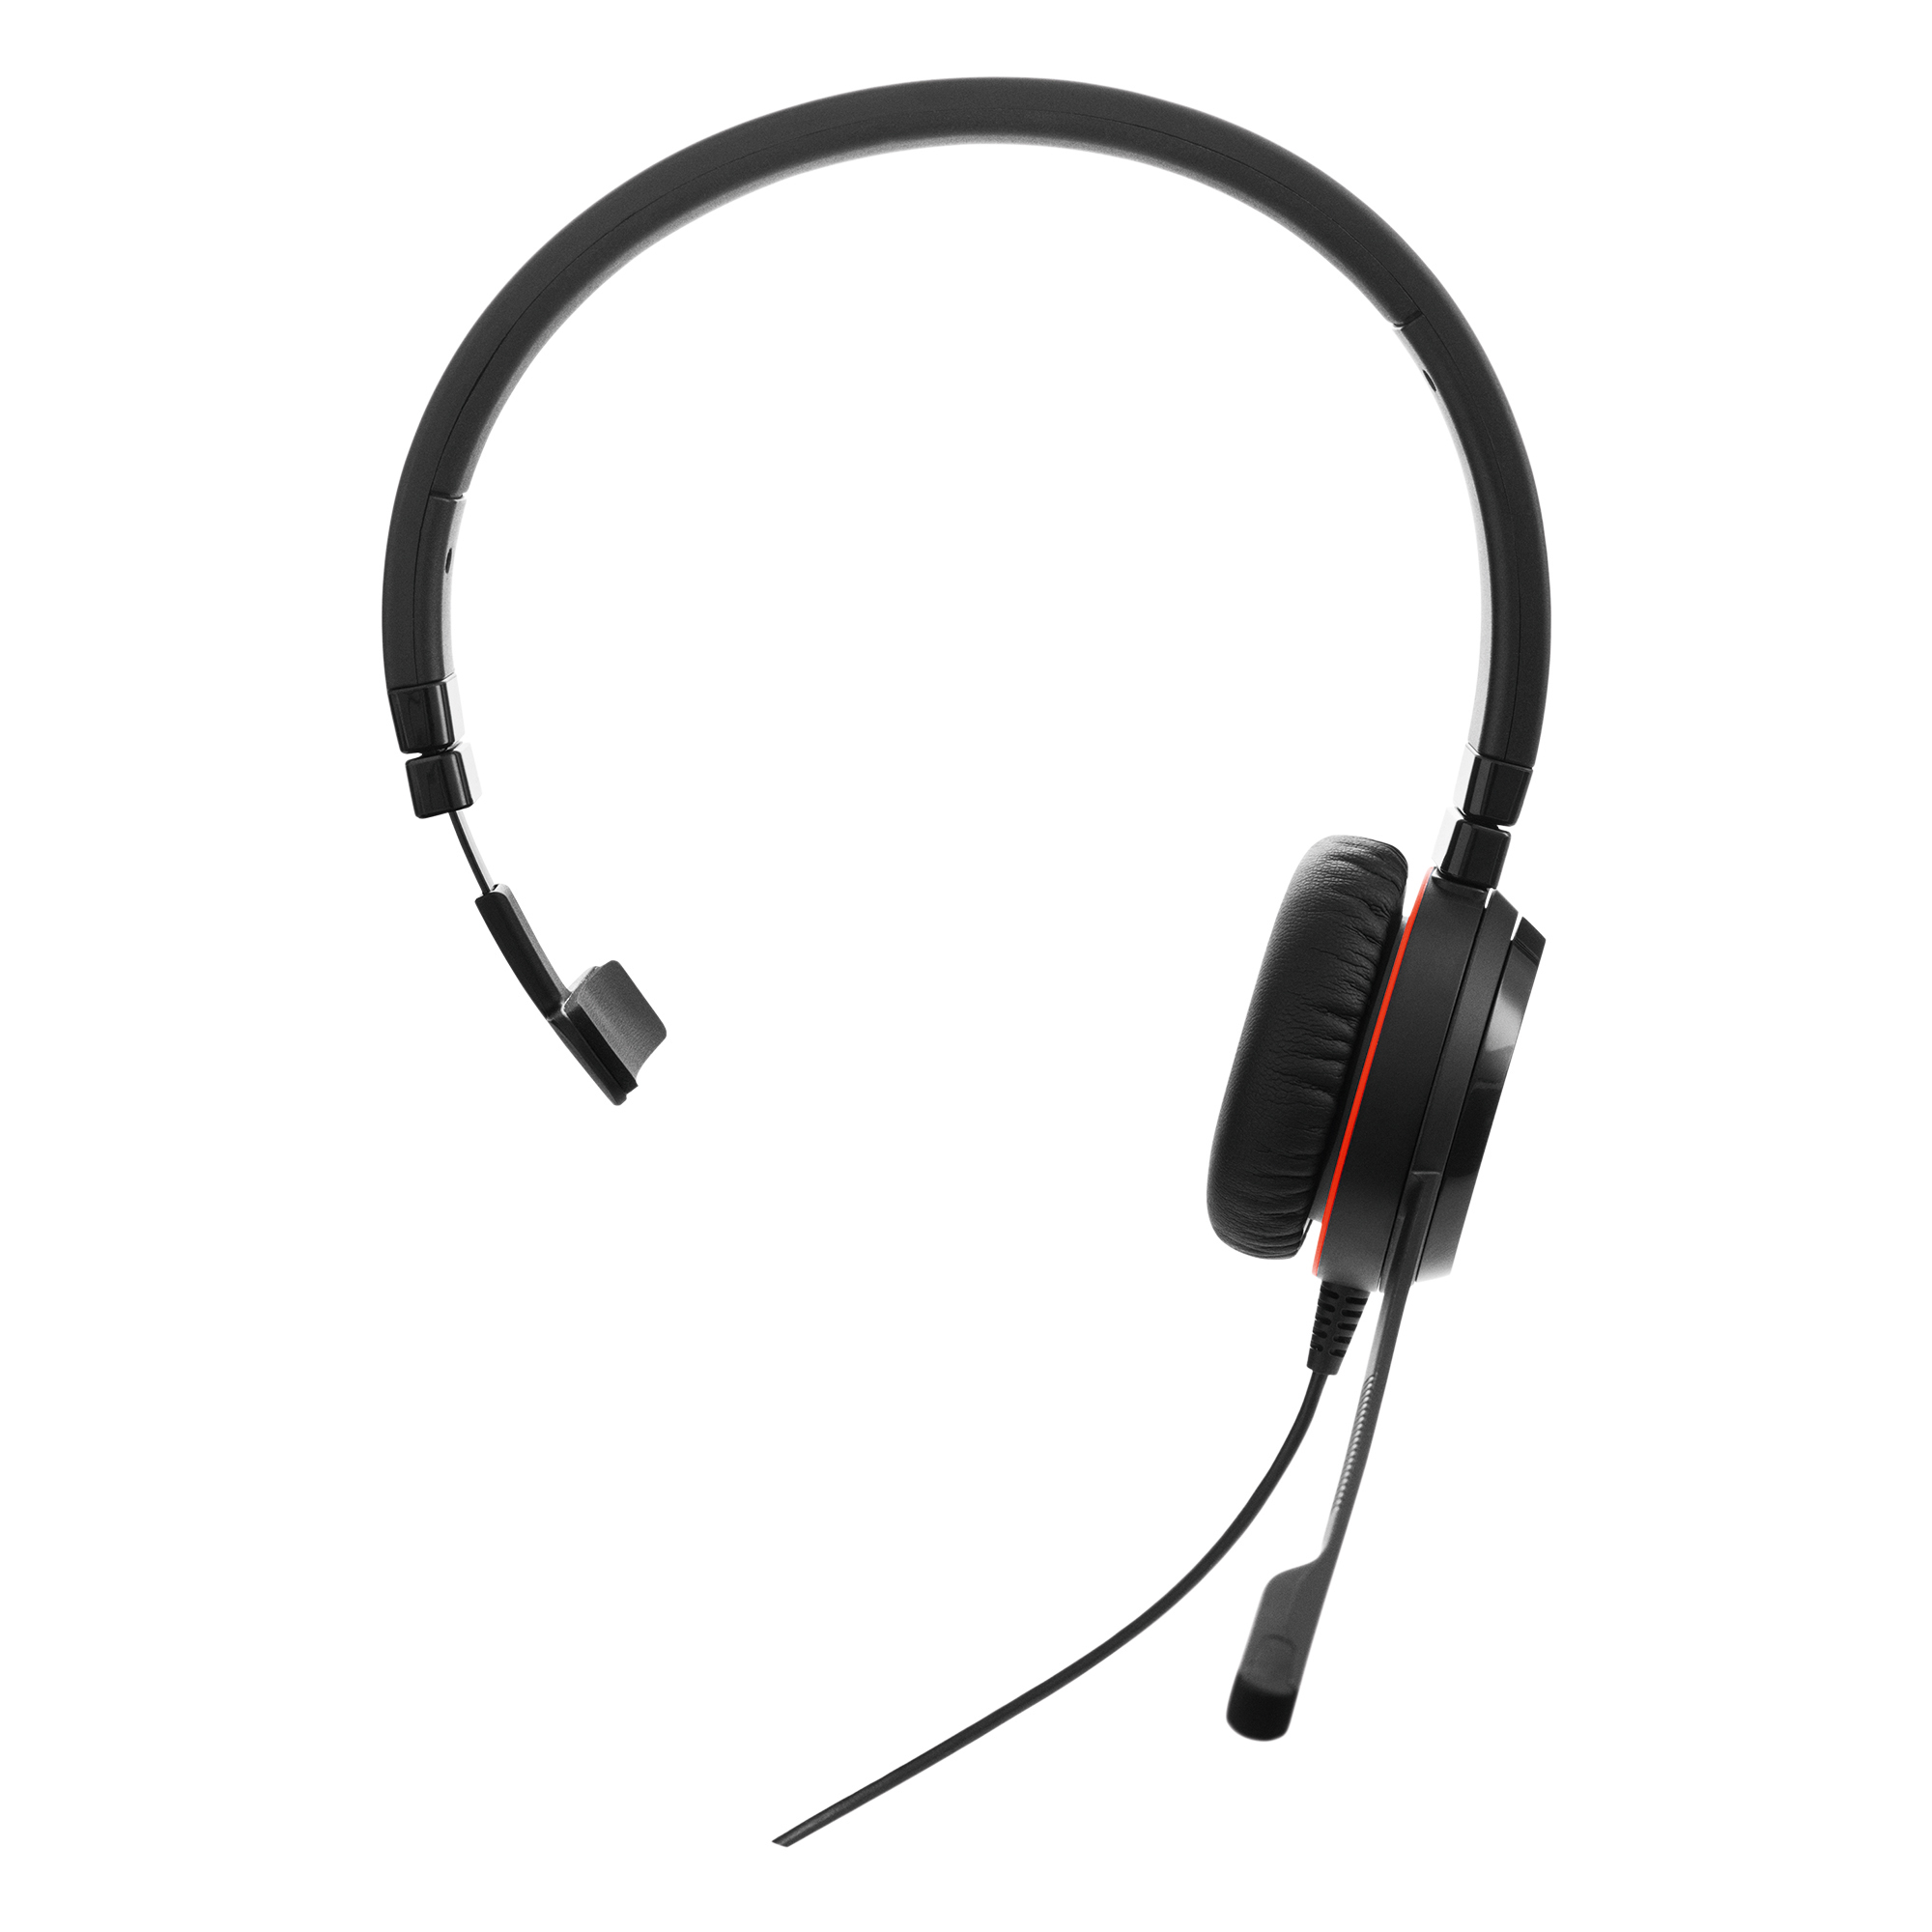 Jabra EVOLVE 30 II Mono USB Headset With Noise Cancelling Microphone Ref 5393-823-309